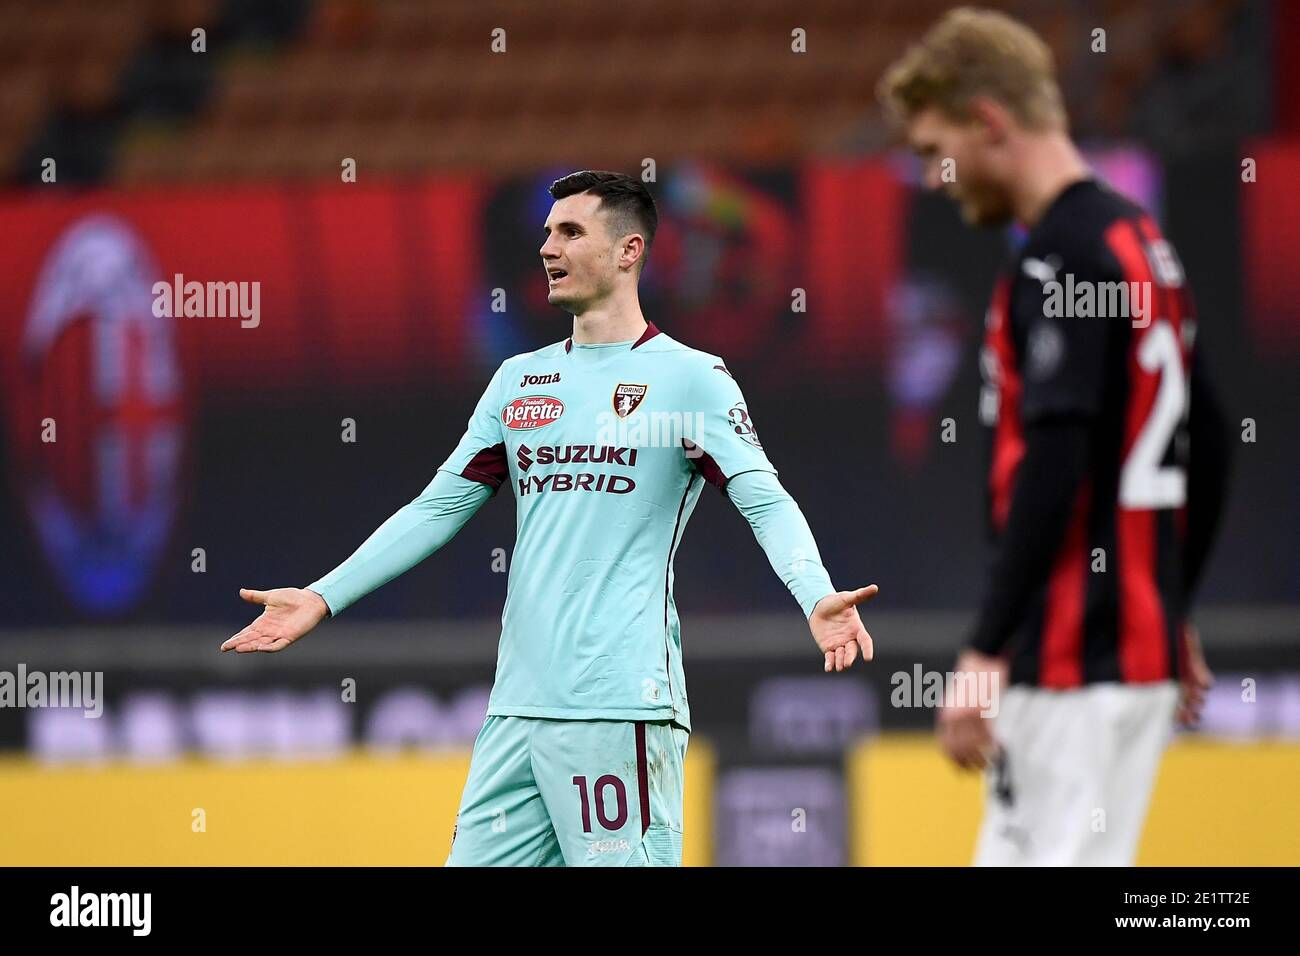 Milan, Italy. 09th Jan, 2021. MILAN, ITALY - January 09, 2021: Amer Gojak of Torino FC reacts during the Serie A football match between AC Milan and Torino FC. (Photo by Nicolò Campo/Sipa USA) Credit: Sipa USA/Alamy Live News Stock Photo